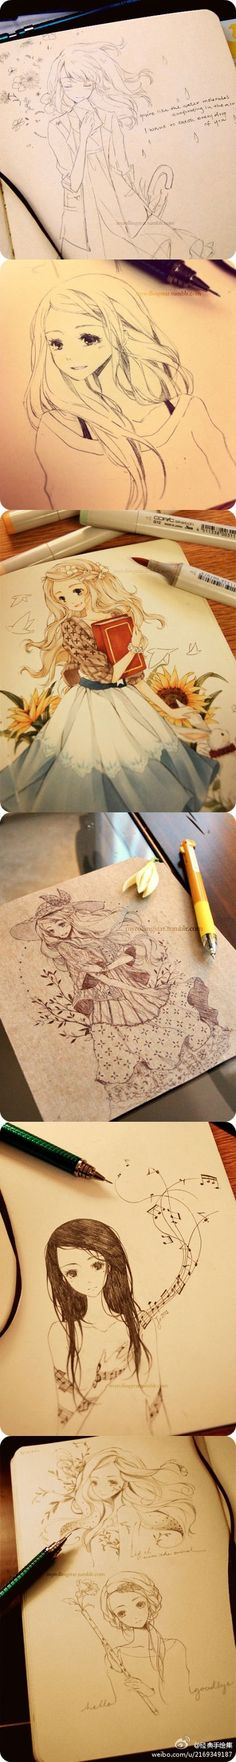 beautiful drawings